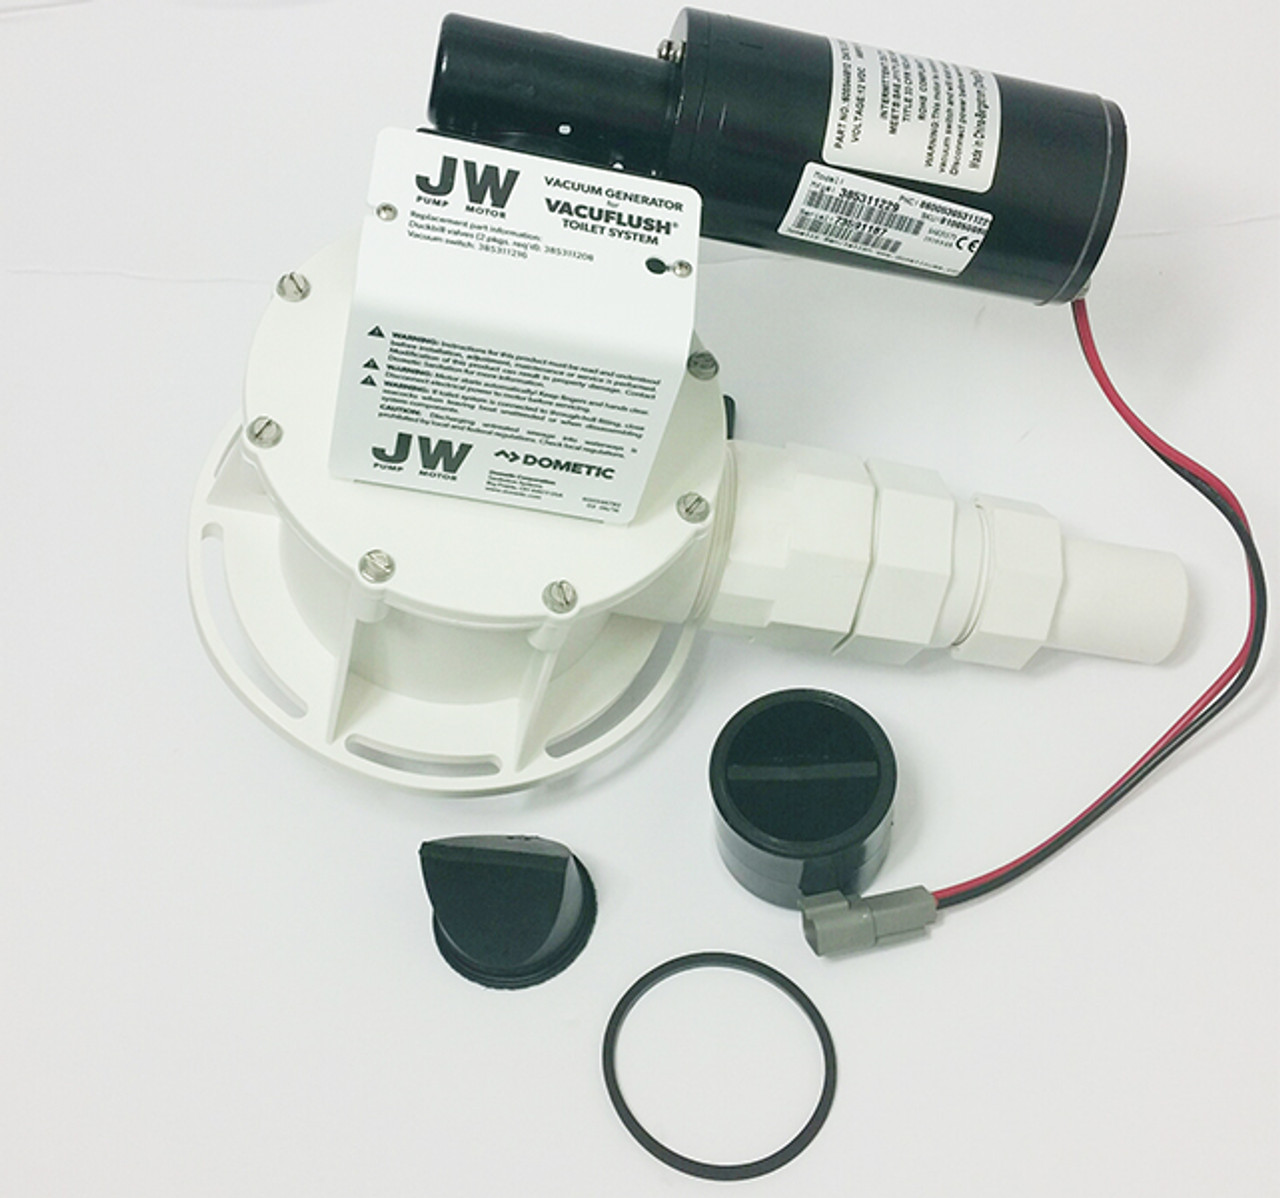 KIT, JW12 PUMP REPLACEMENT * This product may not be available in all areas. Please call for more information.